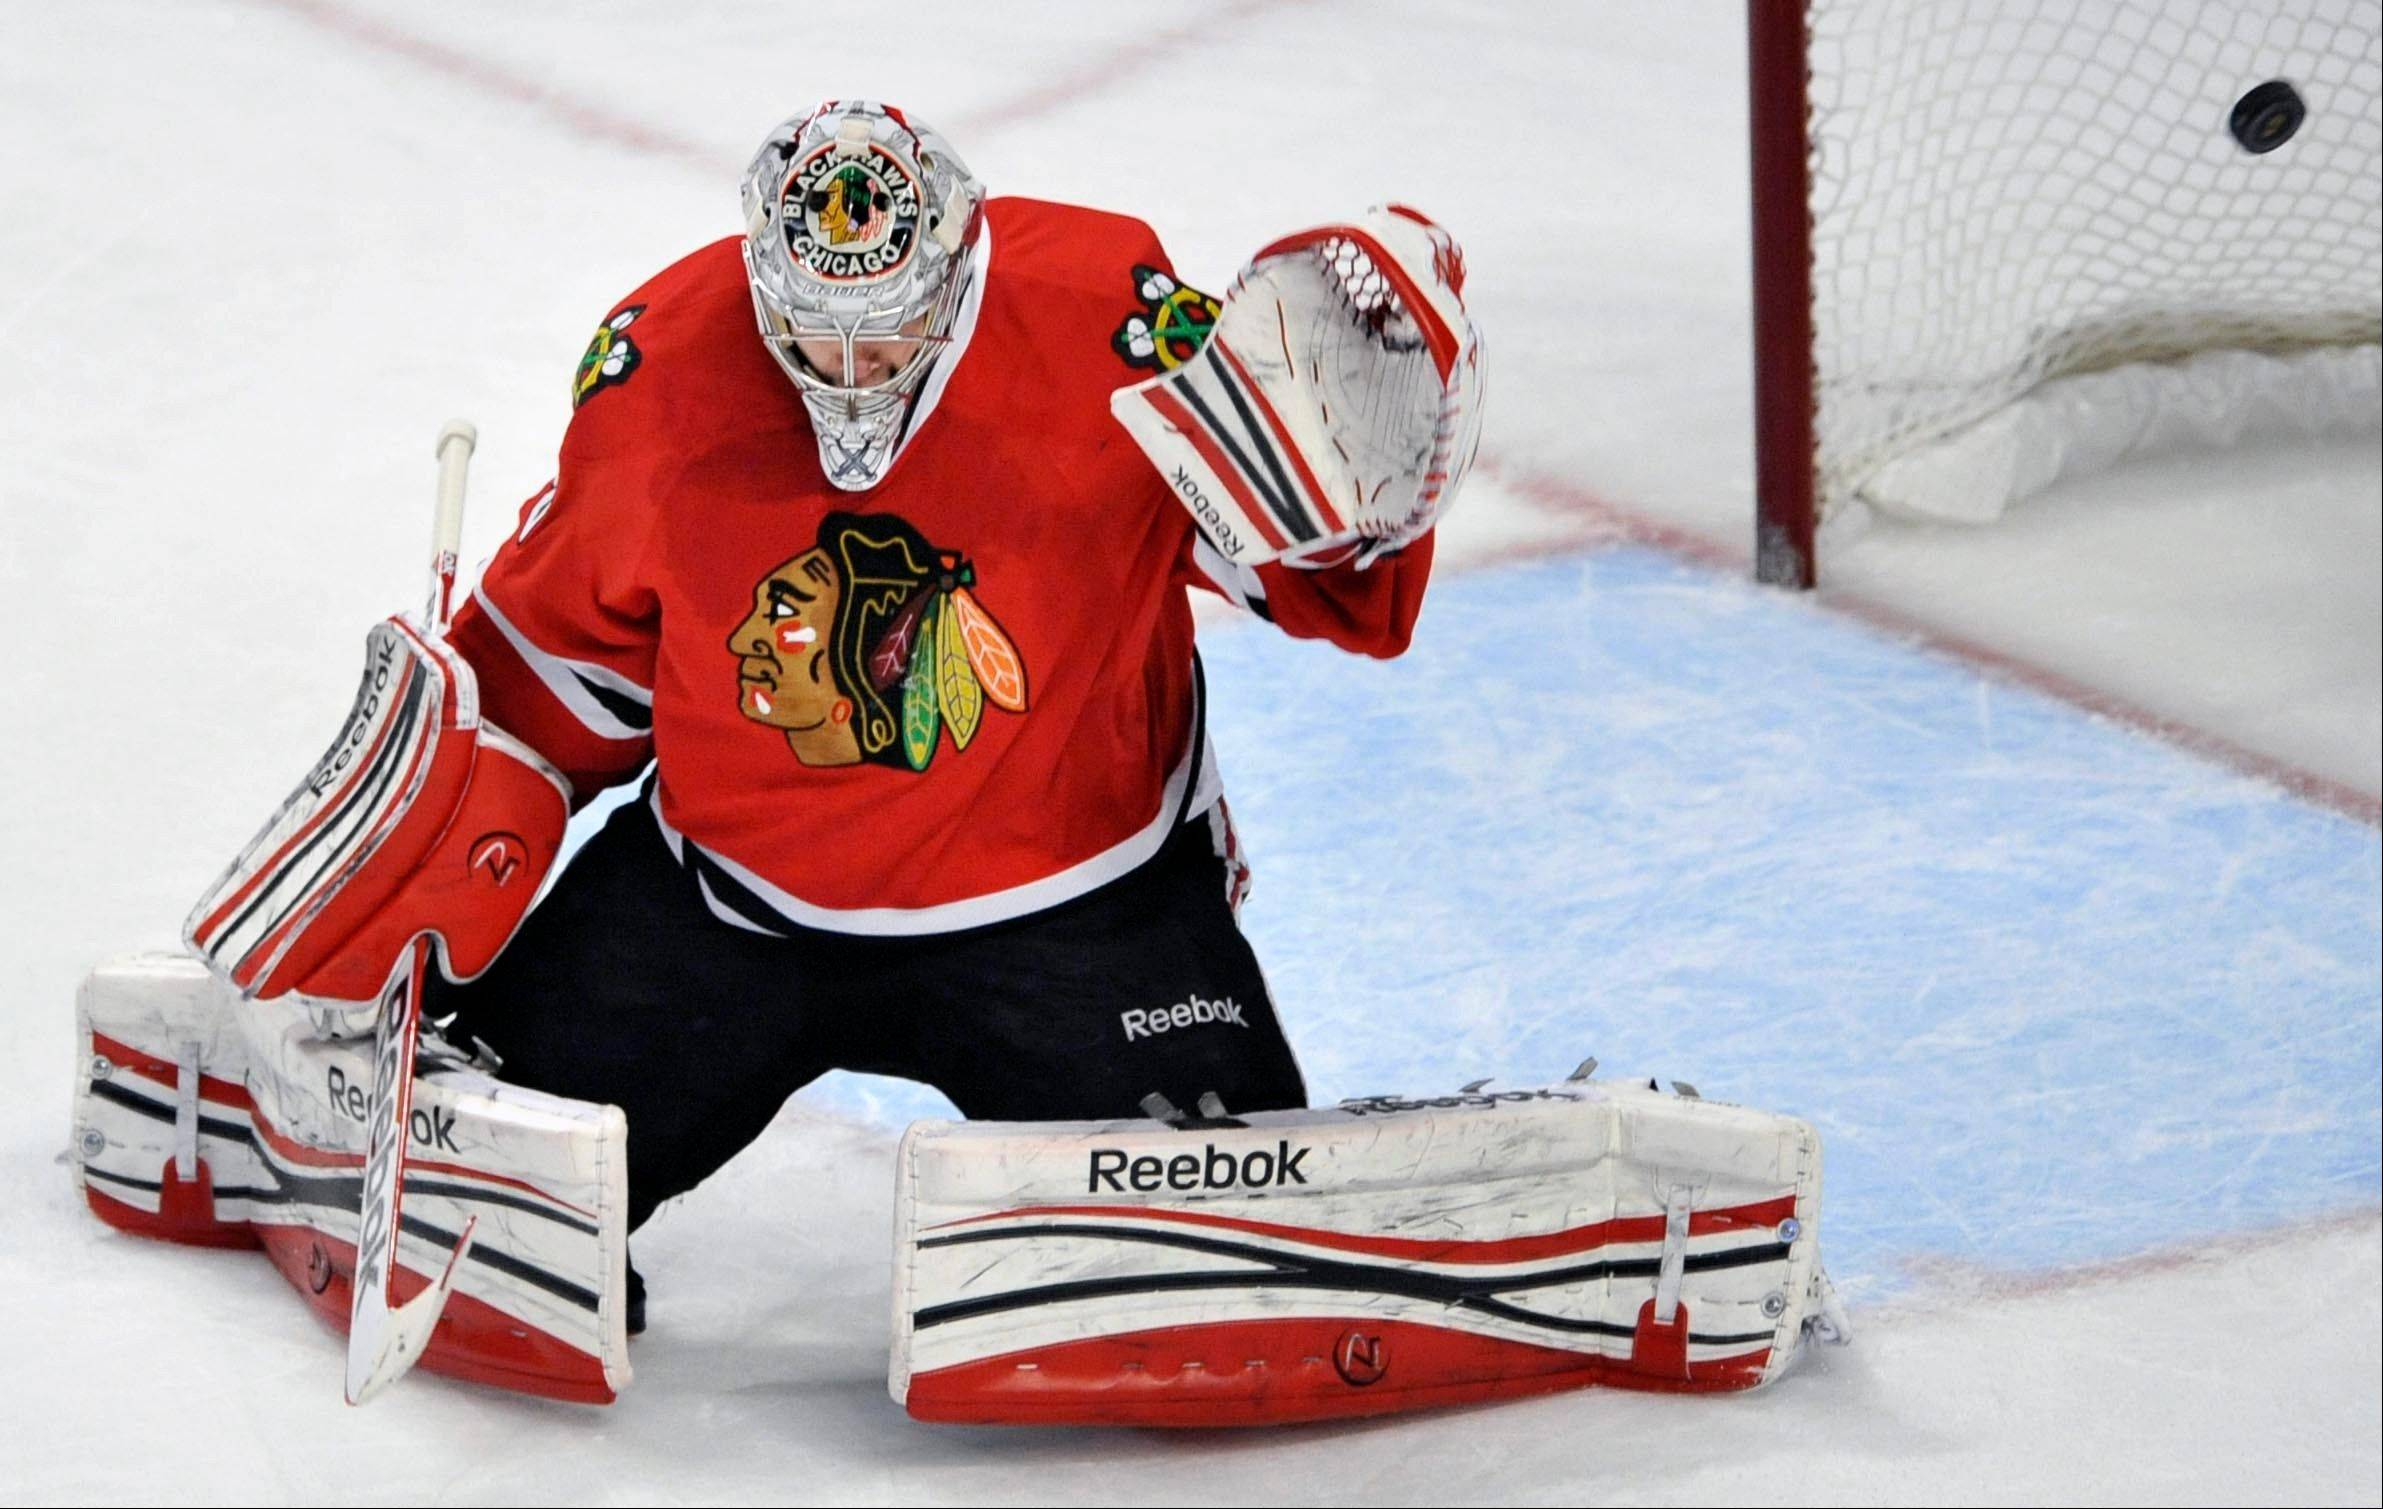 Chicago Blackhawks goalie Corey Crawford misses a goal scored by St. Louis Blues' Adam Cracknell during the first period of an NHL hockey game in Chicago, Thursday, April, 4, 2013.